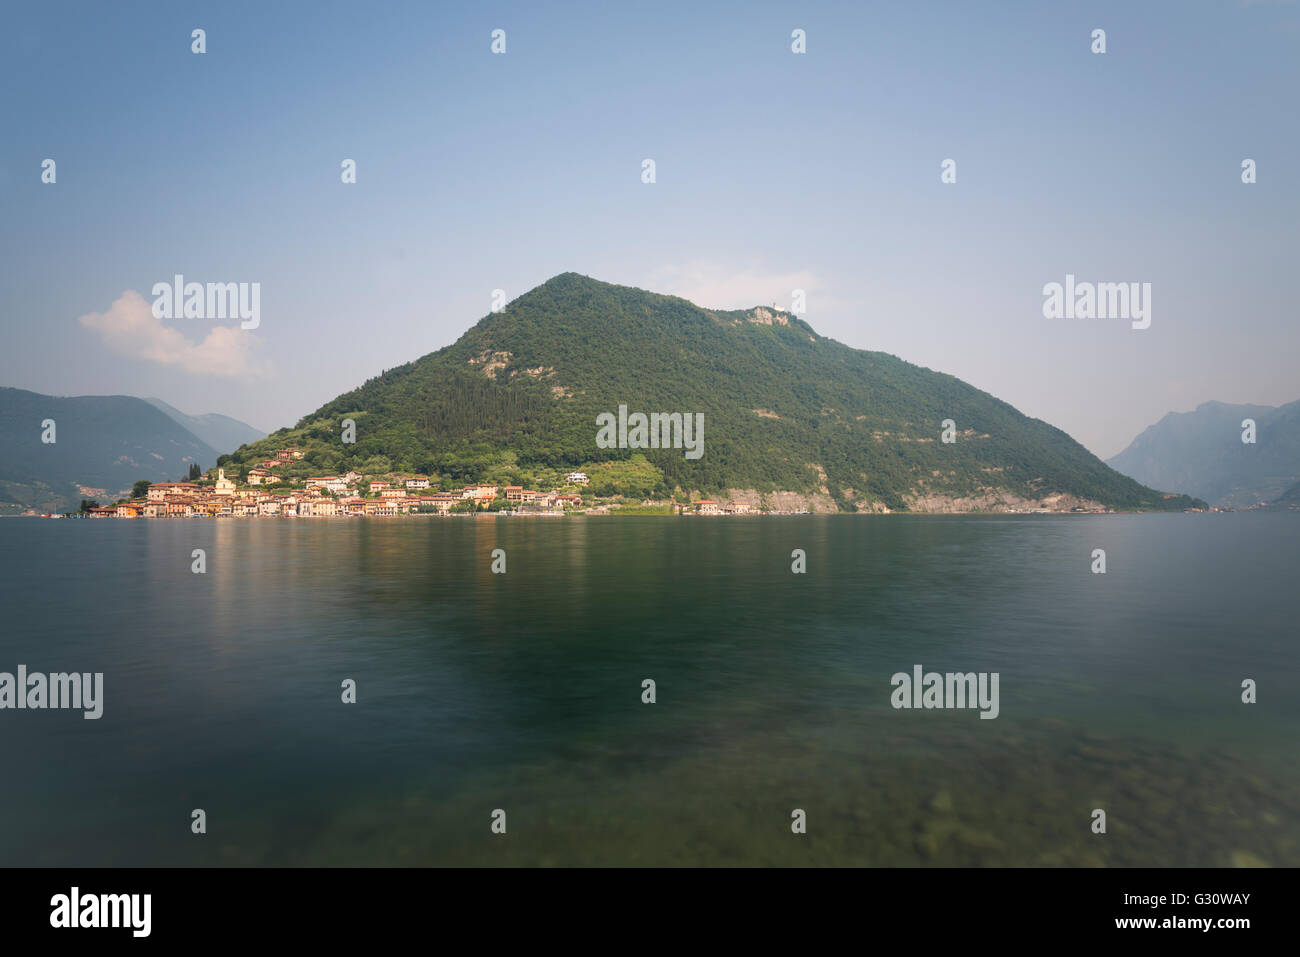 Panorama with Peschiera Maraglio village at the slopes of Monte Isola island at Lake Iseo at sunrise,Sulzano,Lombardy,Italy - Stock Image